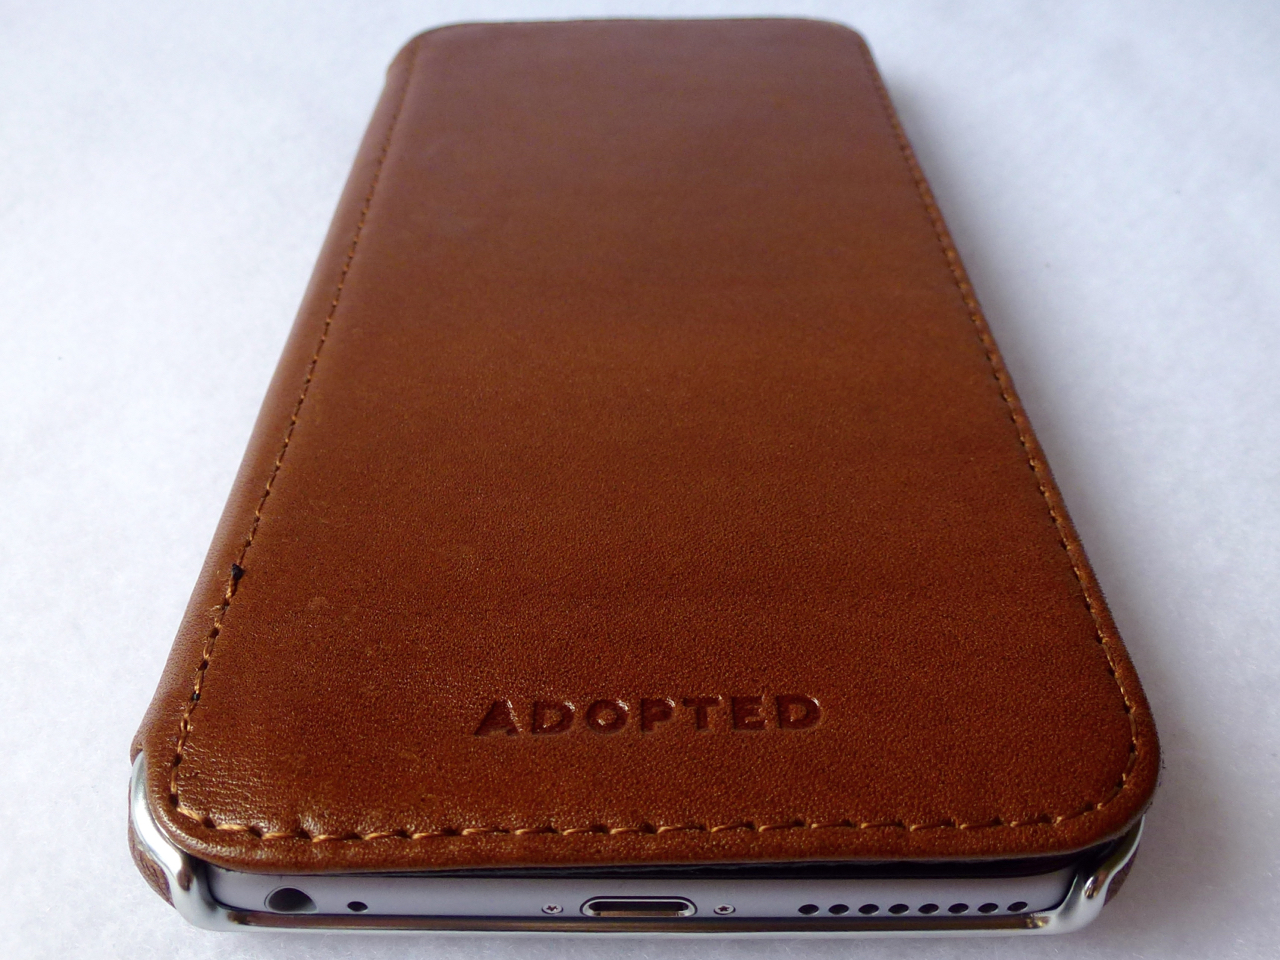 newest cf982 43adb Adopted Saddle Leather Folio for iPhone 6 Plus: Luxurious and ...